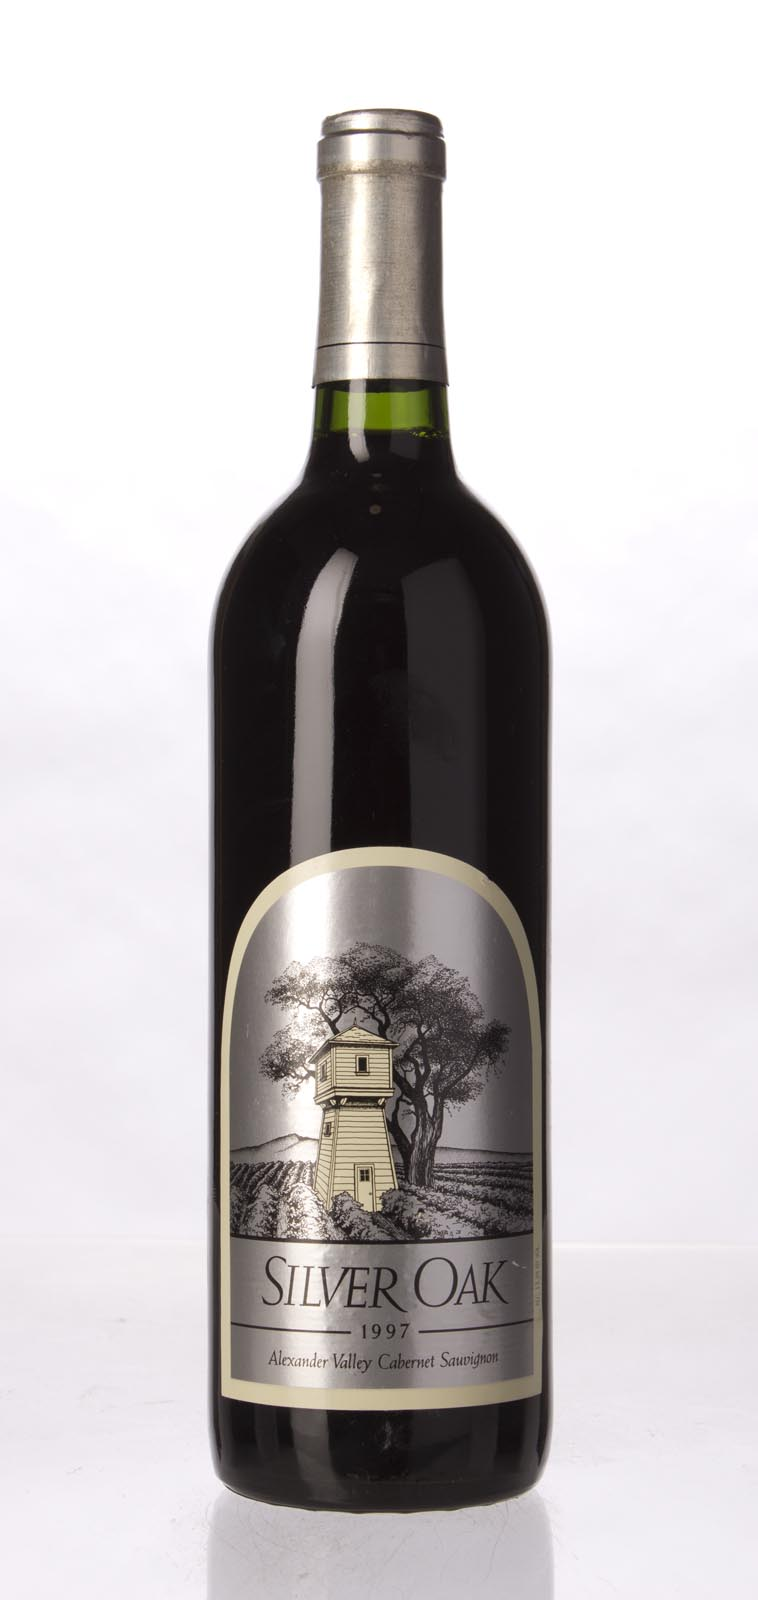 Silver Oak Cabernet Sauvignon Alexander Valley 1997, 750mL (WA89) from The BPW - Merchants of rare and fine wines.